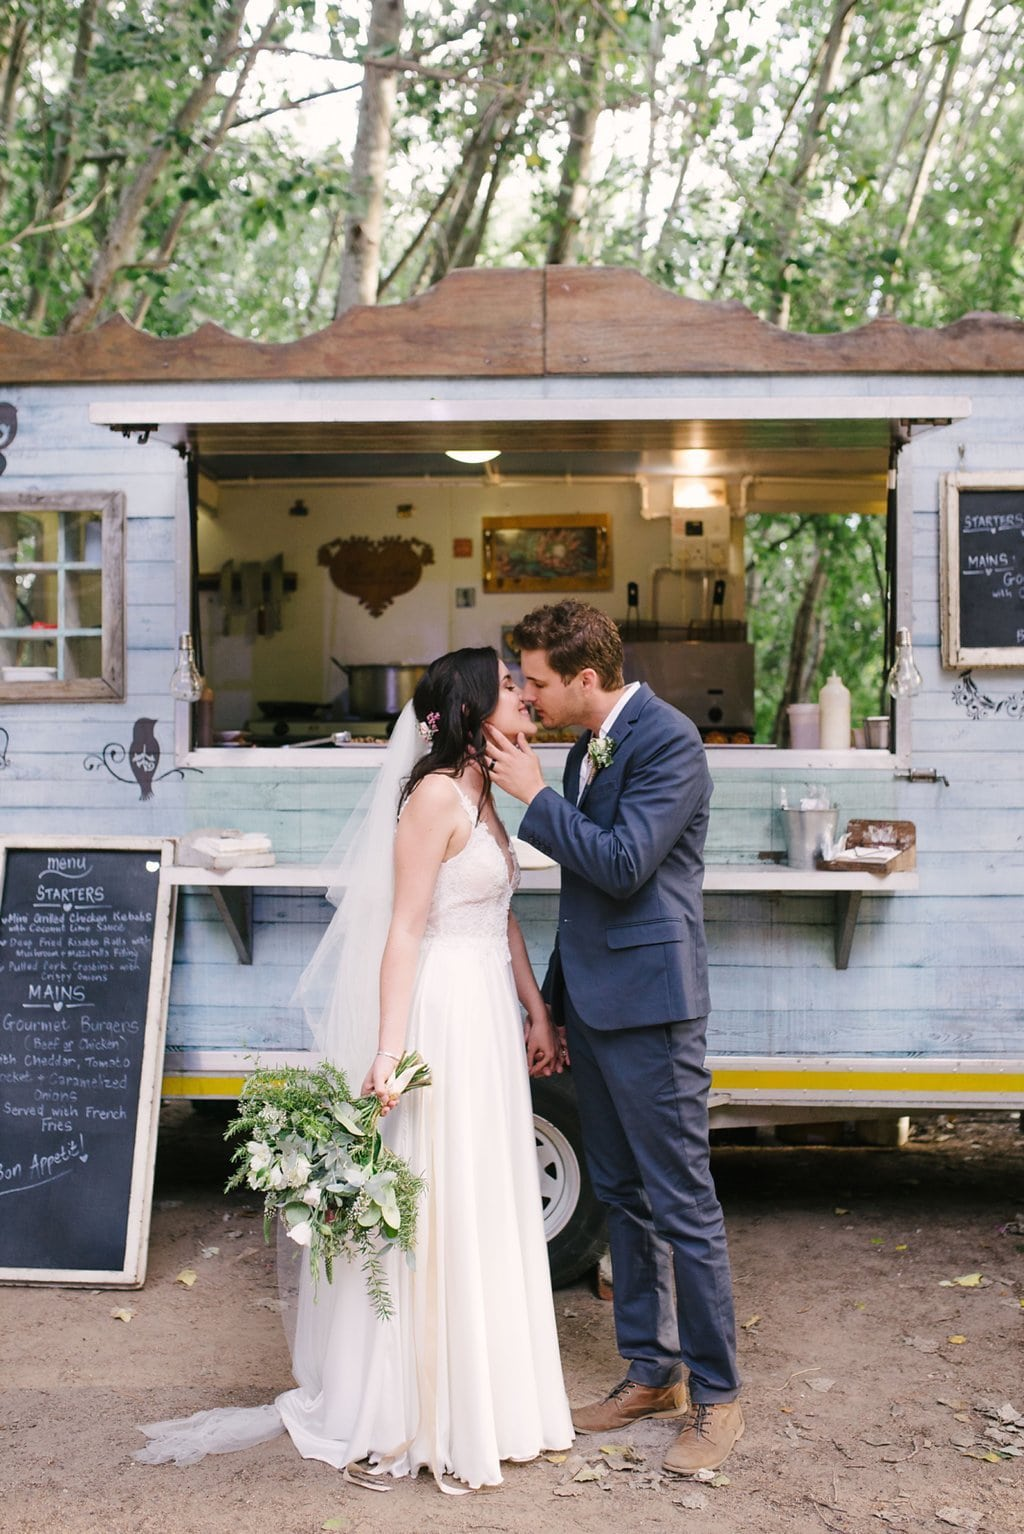 Forest Food Truck Wedding | Image: Cheryl McEwan